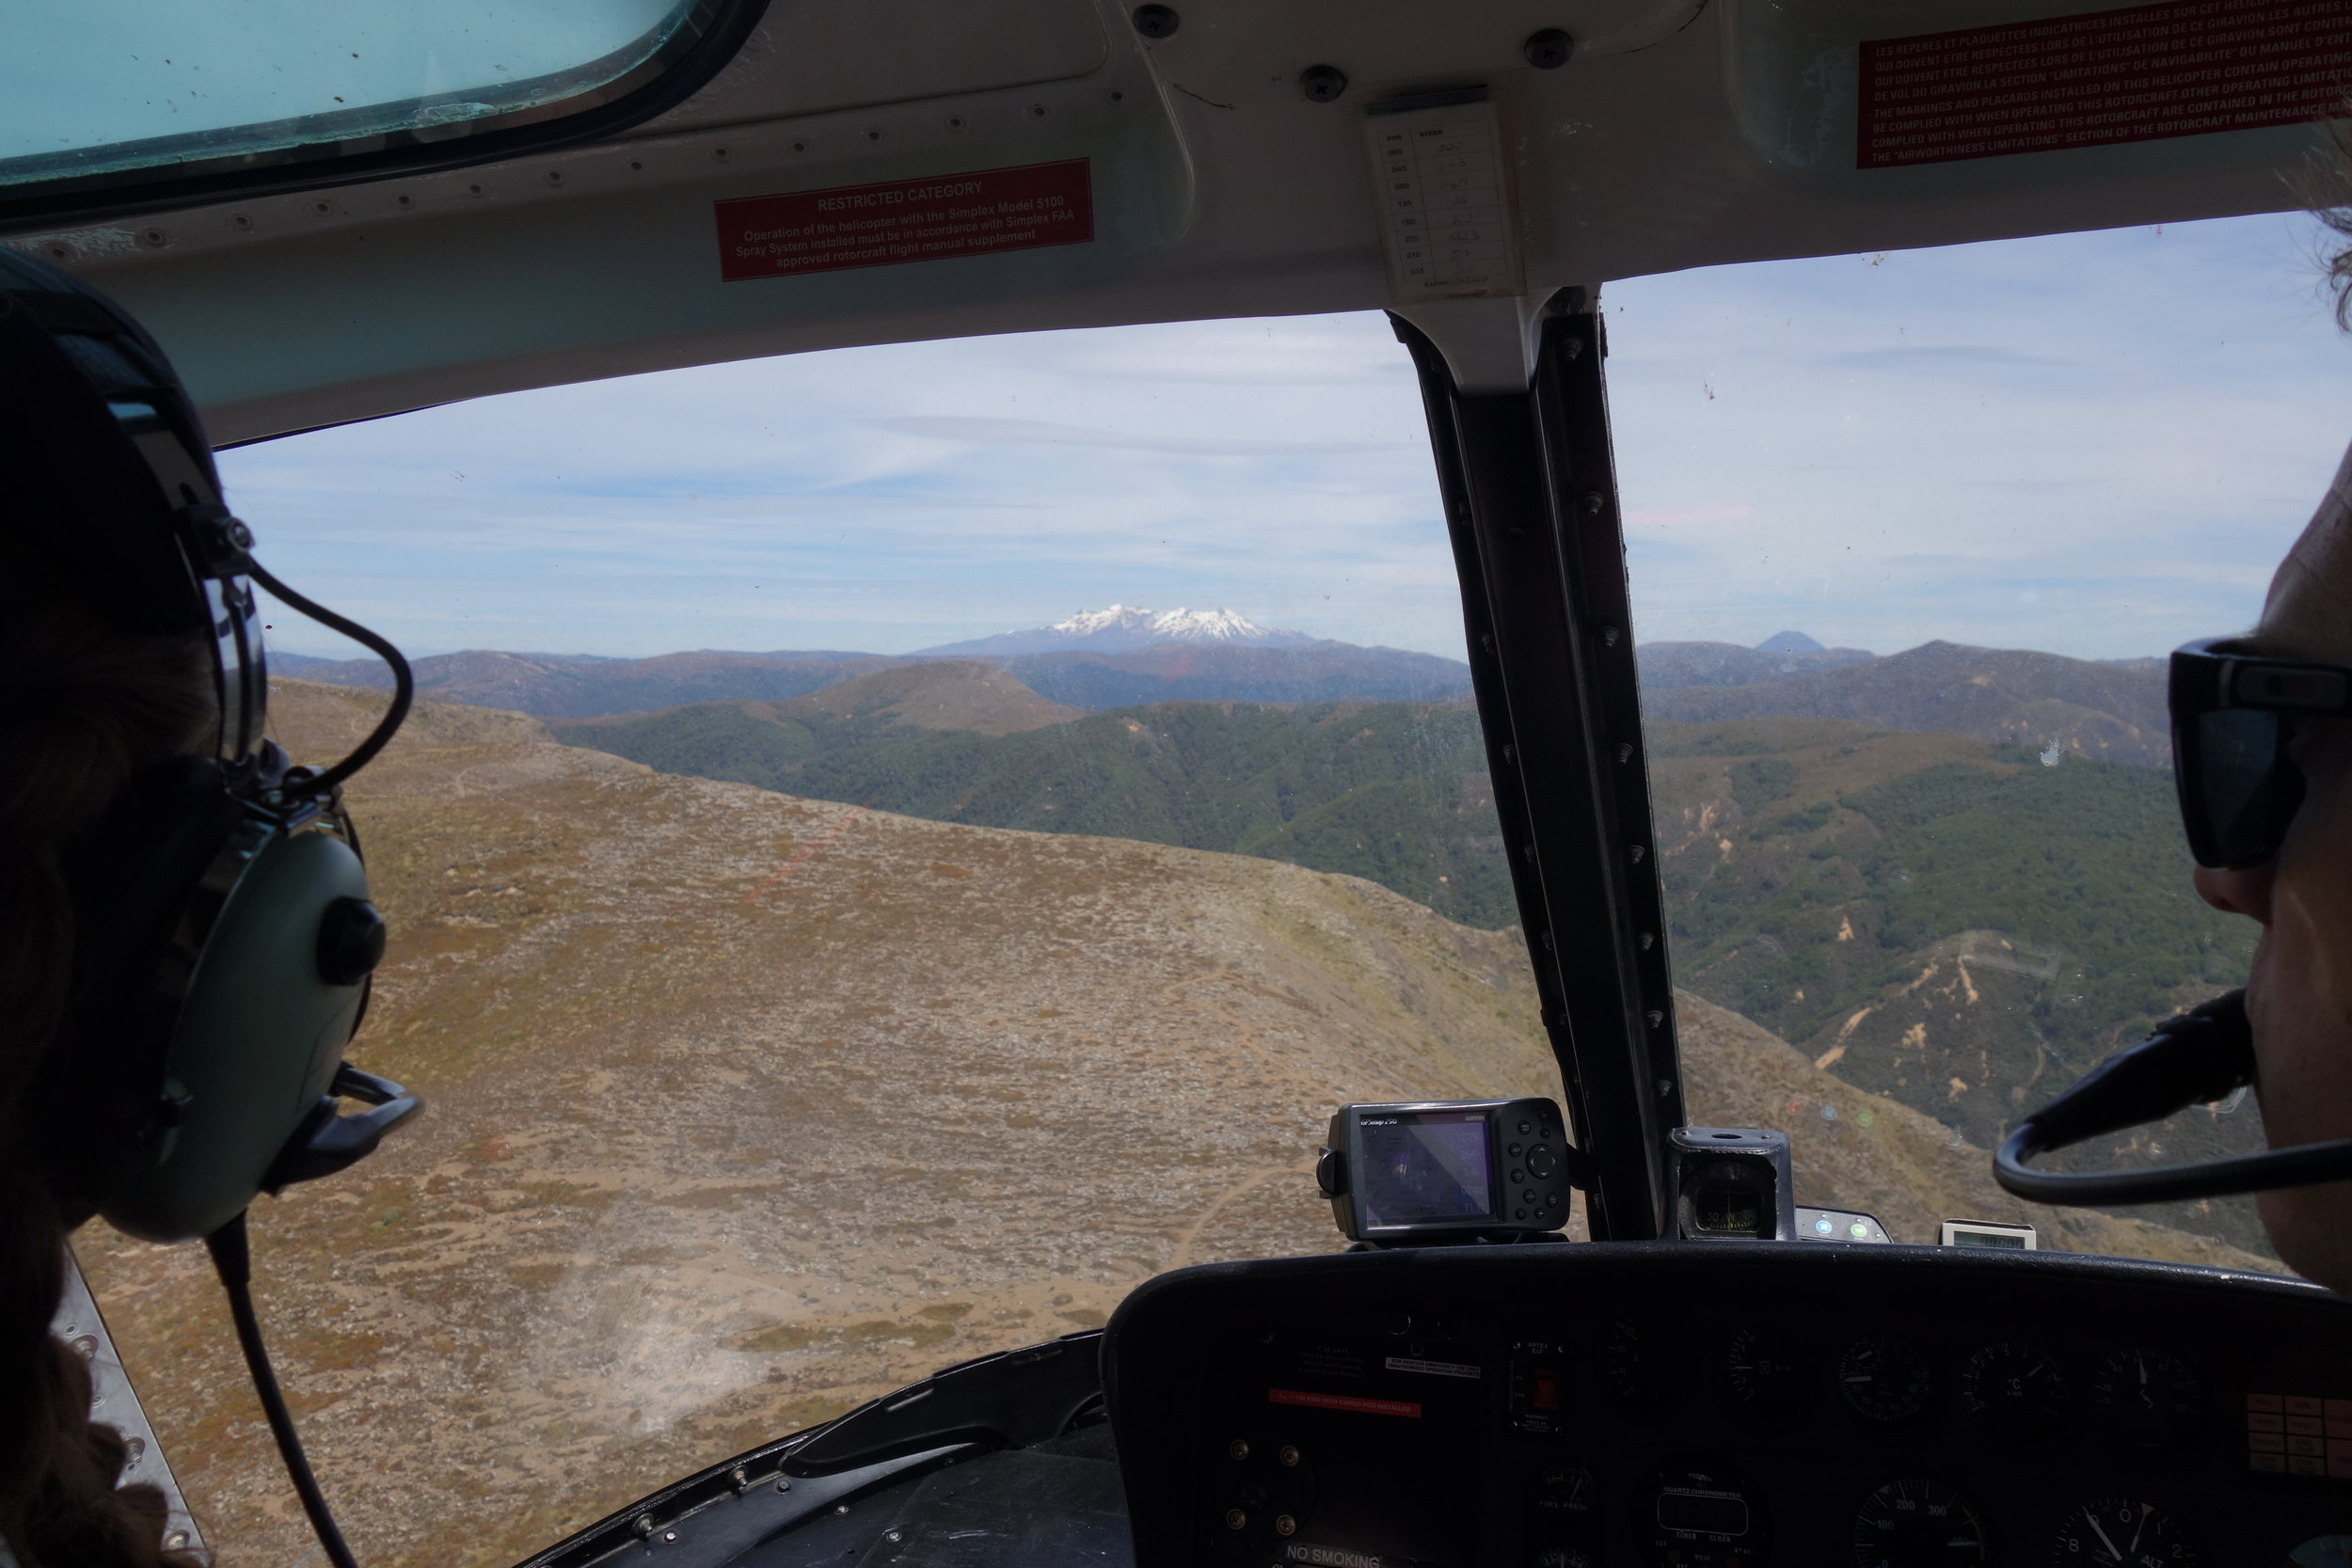 Coming in hot with Mt. Ruapehu in the distance